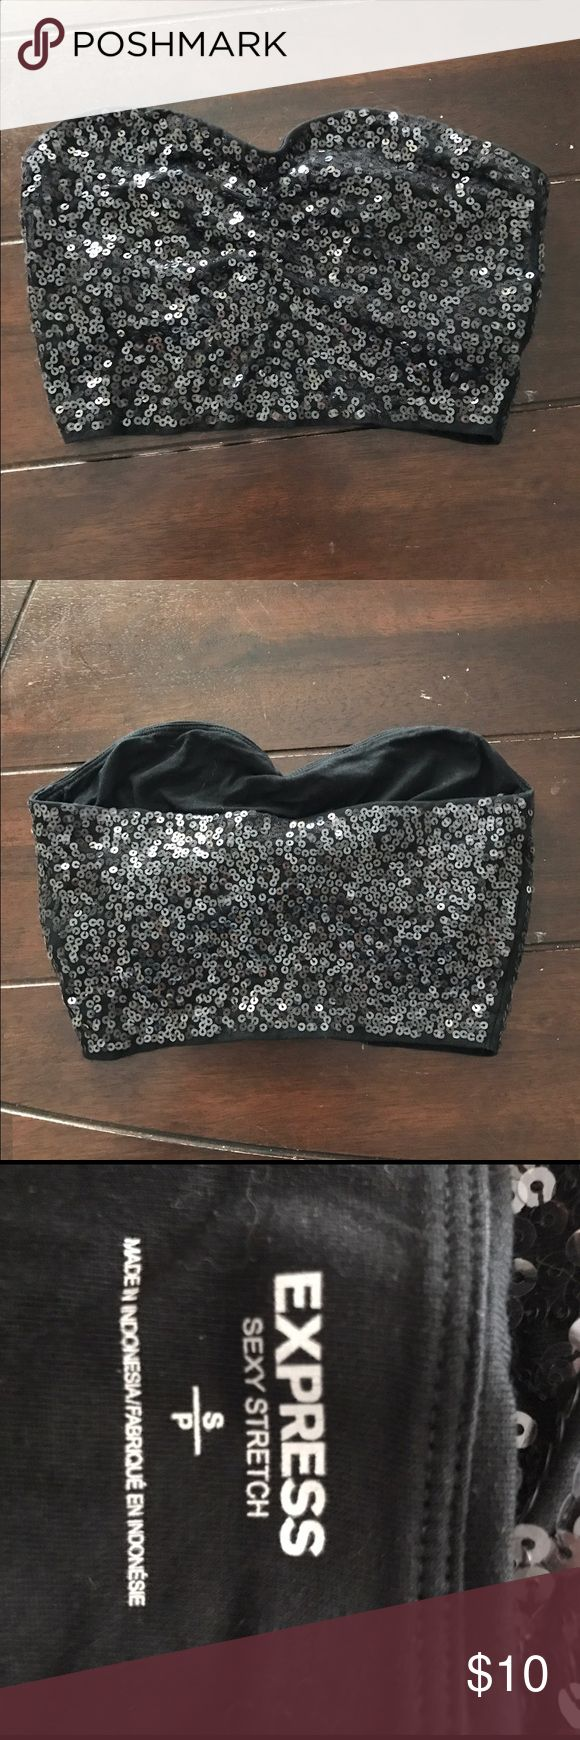 Express Sexy Stretch Sequin Bandeau Top size Small Very cute sequined bandeau top with built in bra. Perfect for any special occasion or going out. Only worn for one New Year's Eve. $10 OBO, price NGO, make me an offer! Express Tops